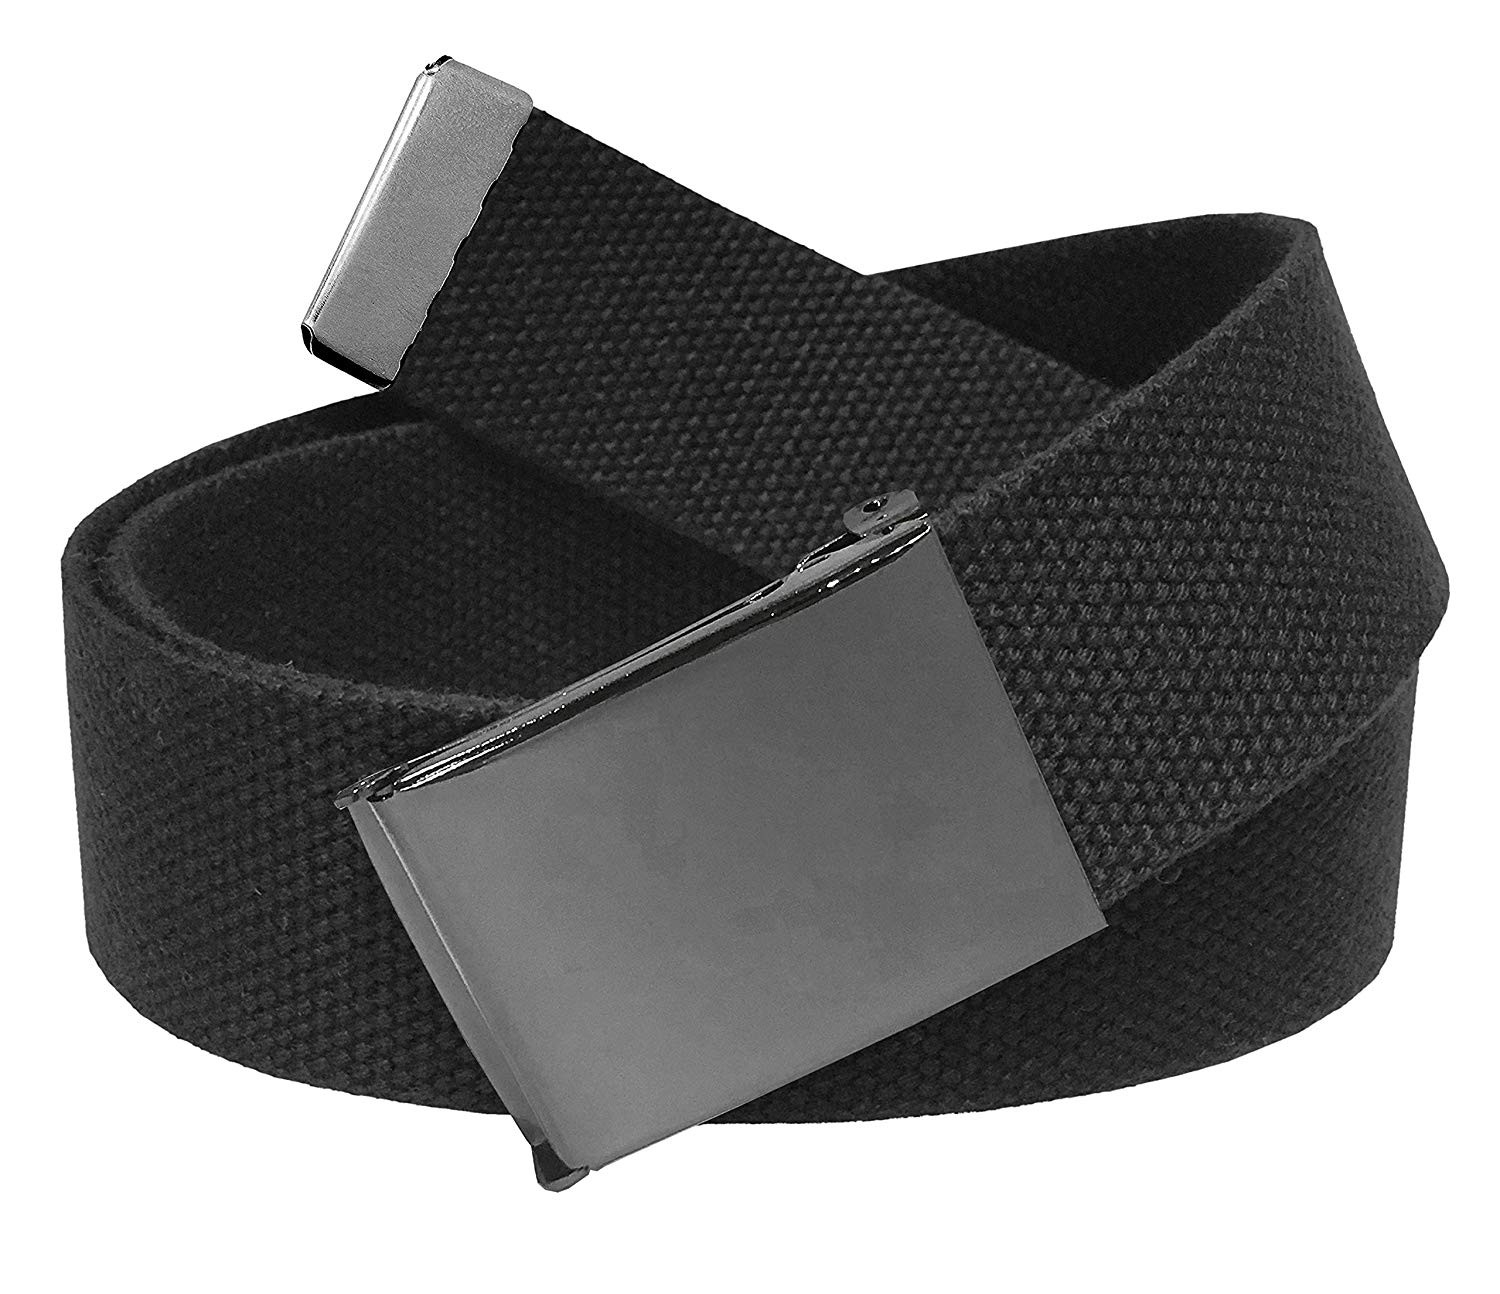 7b8987a562eae Get Quotations · Men's Golf Belt in 1.5 Polished Pewter Flip Top Buckle  with Canvas Web Belt